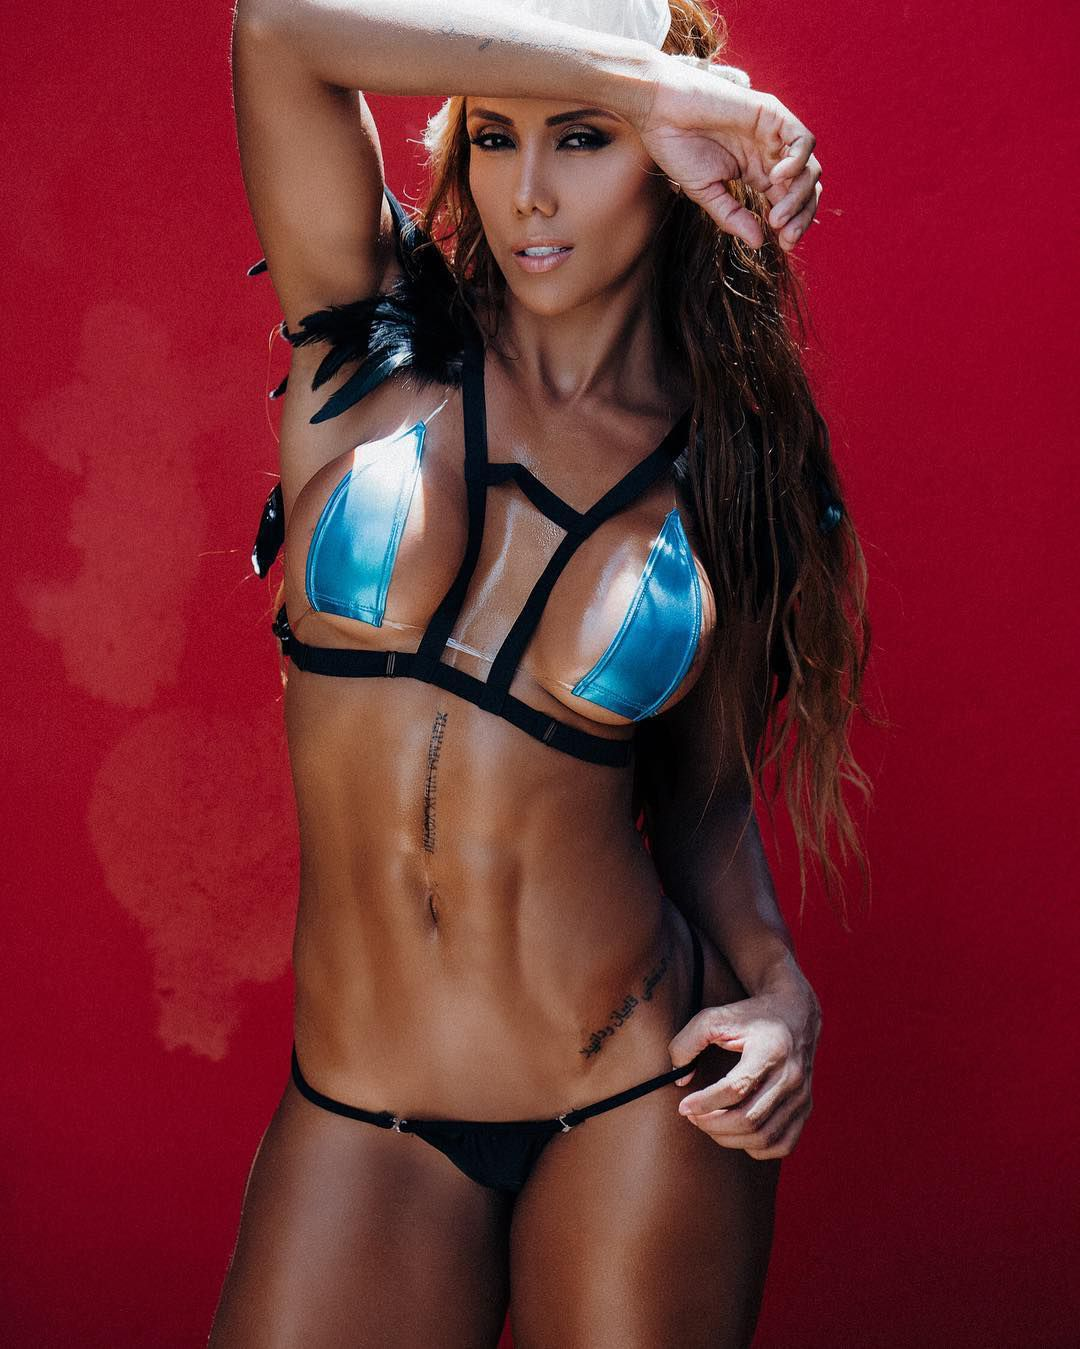 Fitness Model Female Sonia Isaza